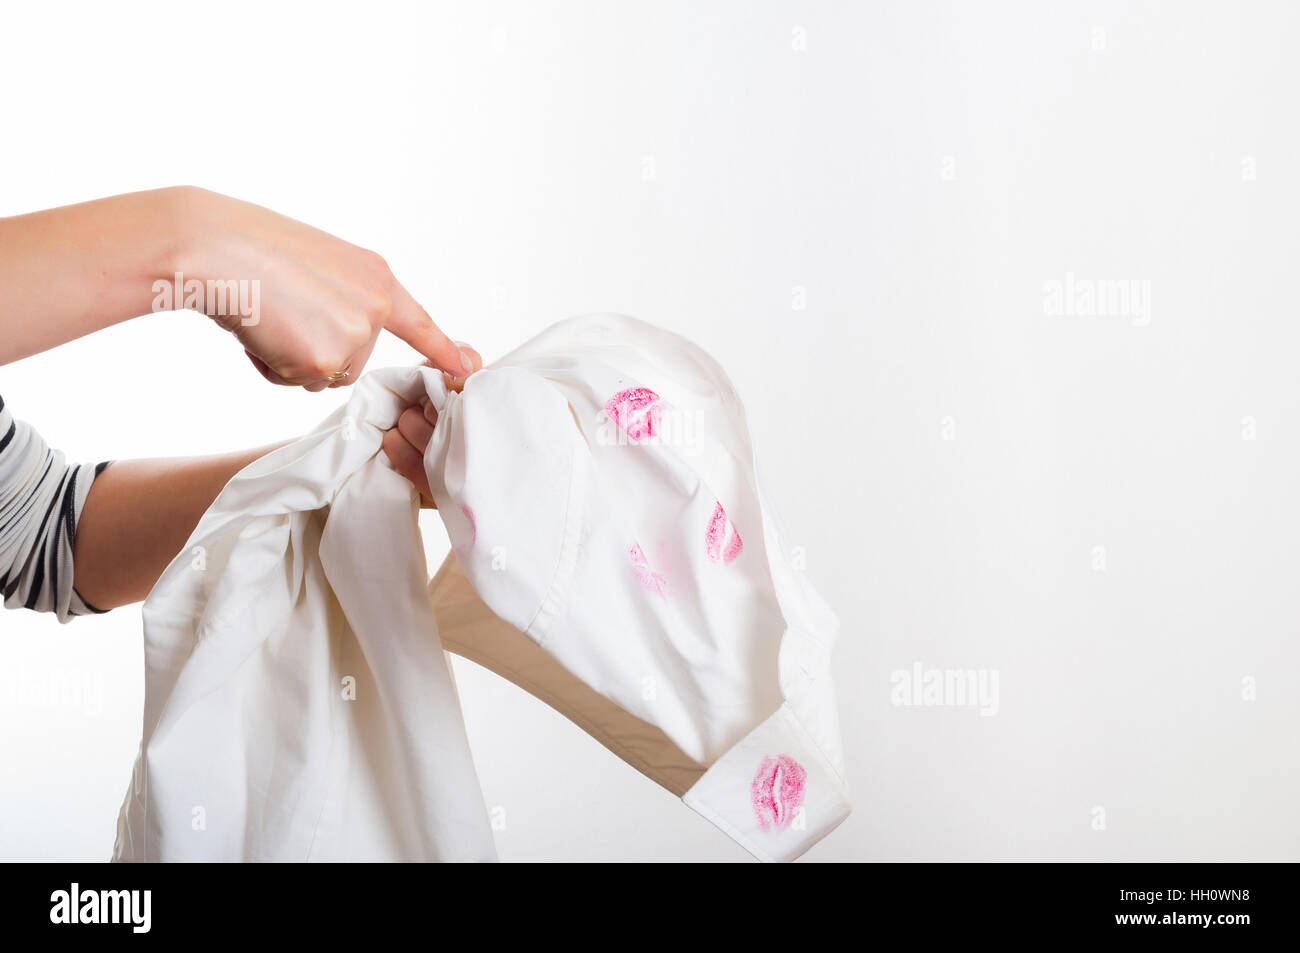 Woman pointing on white shirt with red lipstick marks suspecting of cheating - Stock Image